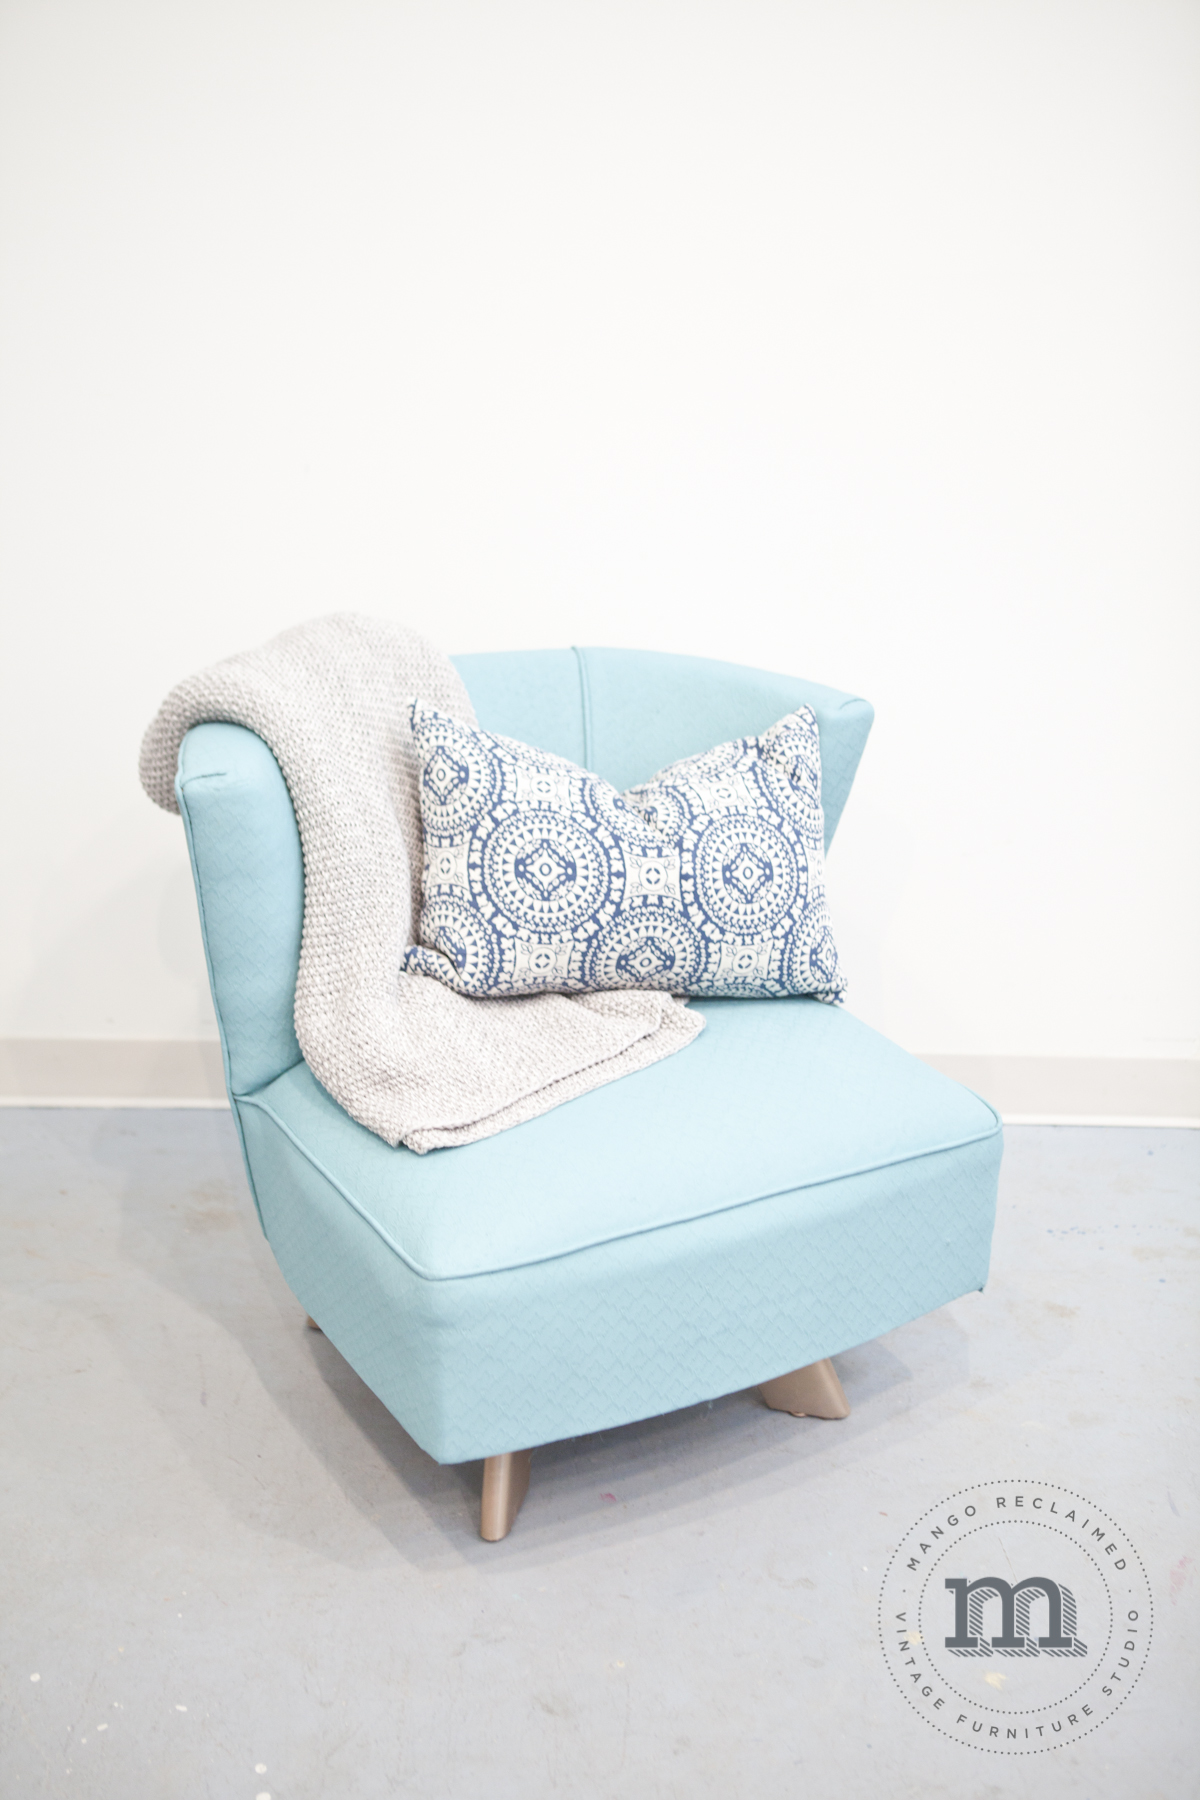 Painted upholstered swivel chair available at Mango Reclaimed, $275.